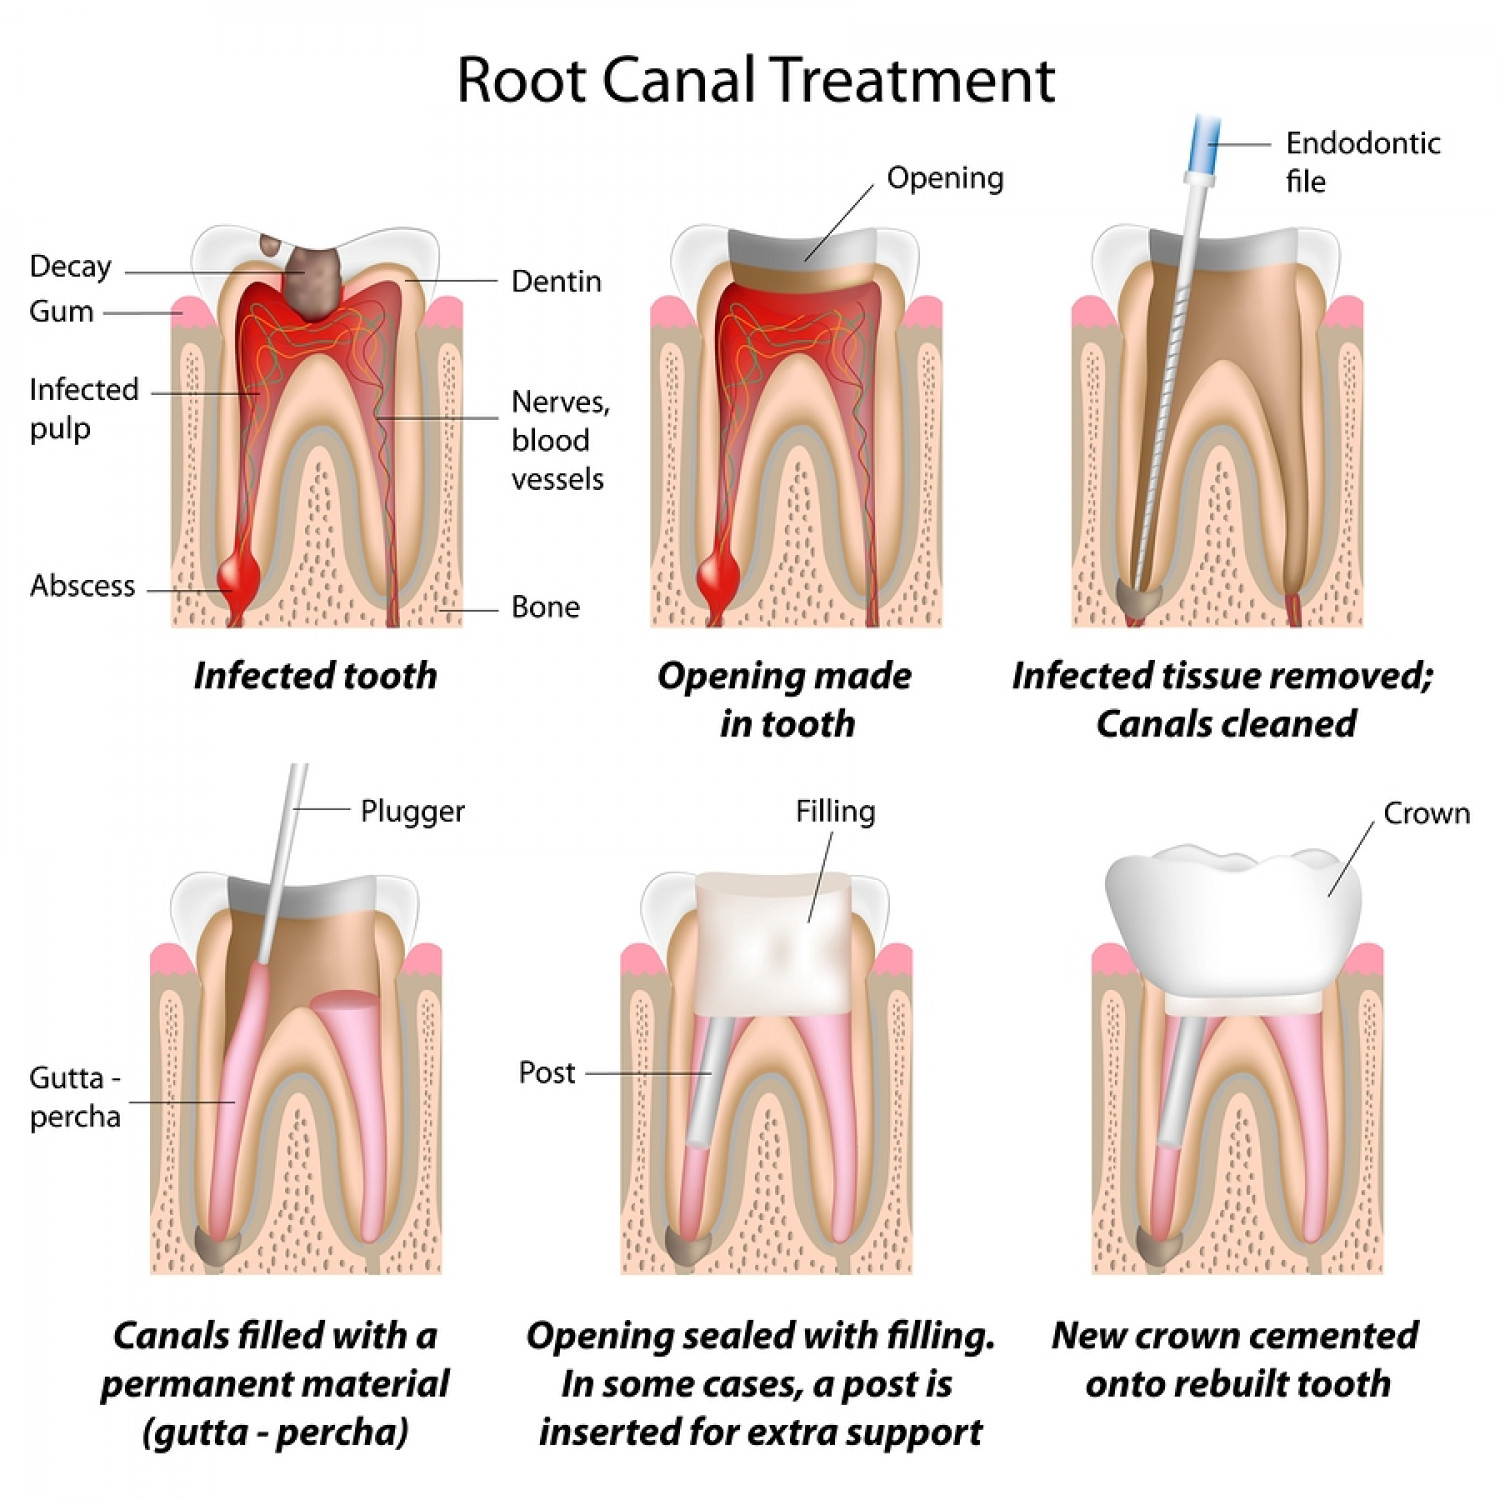 Root Canal Treatment Infographic